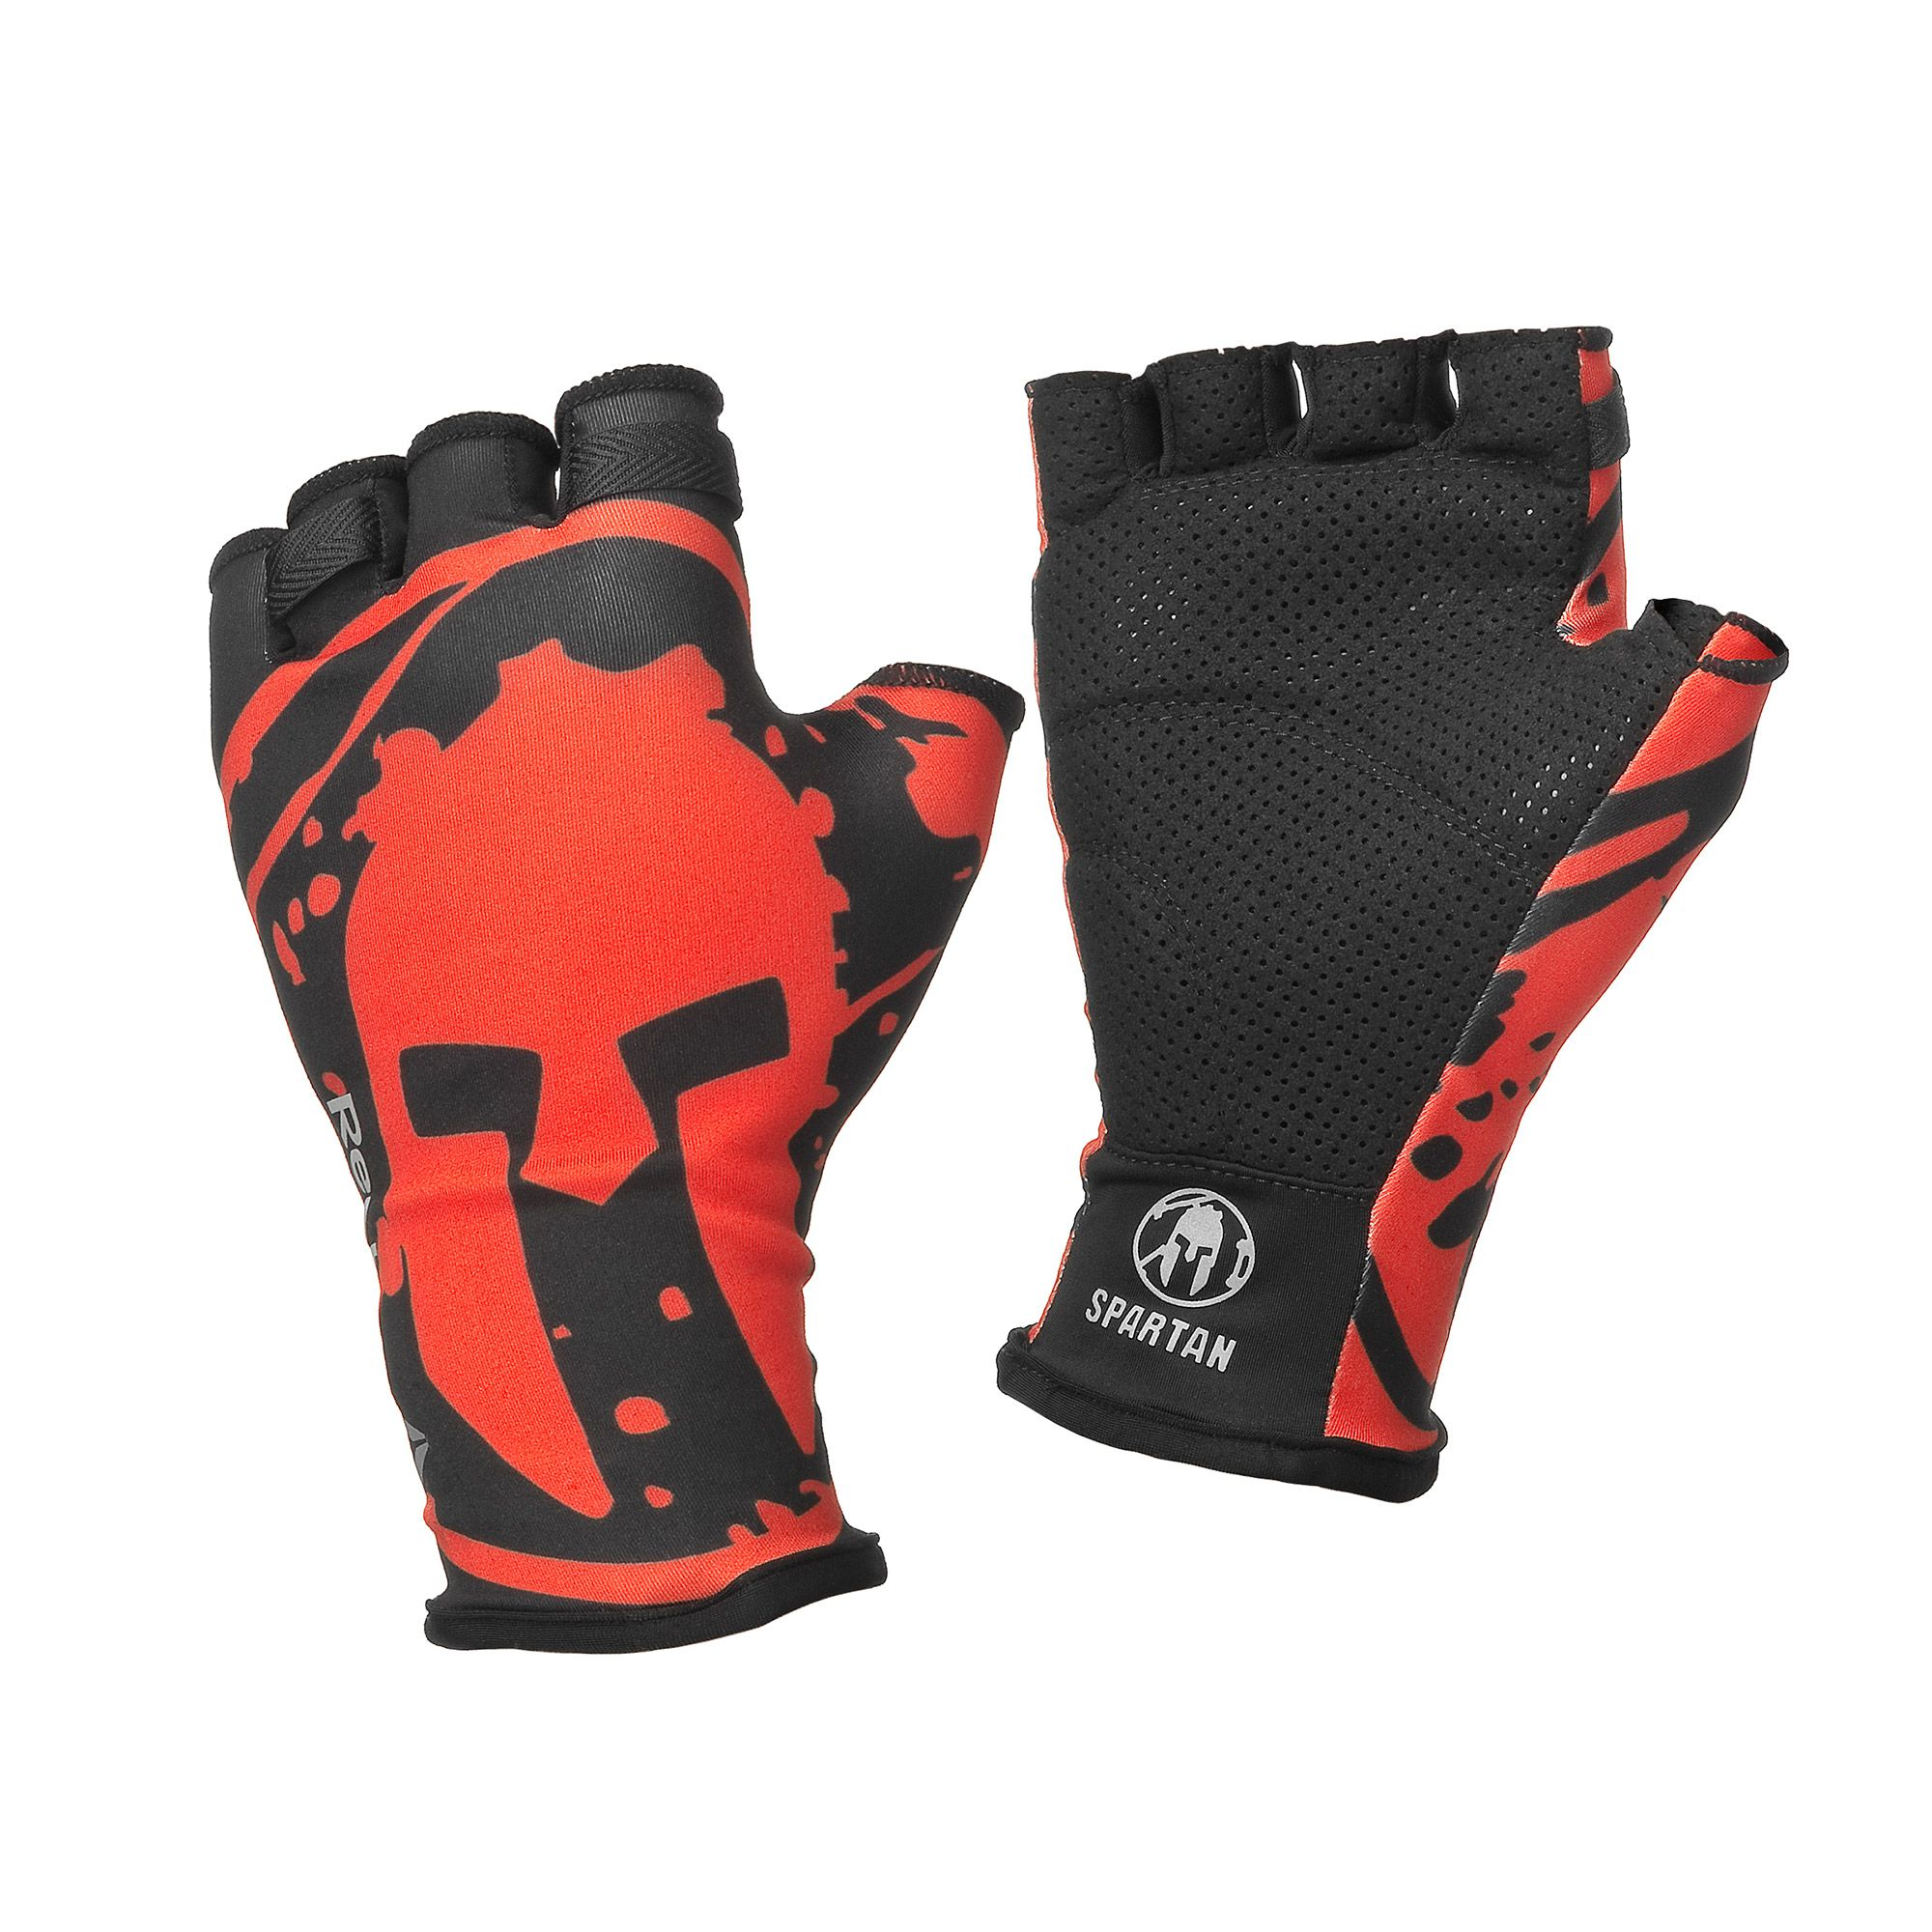 Black gloves races - You Re Only As Good As Your Grip When You Re Up Against The